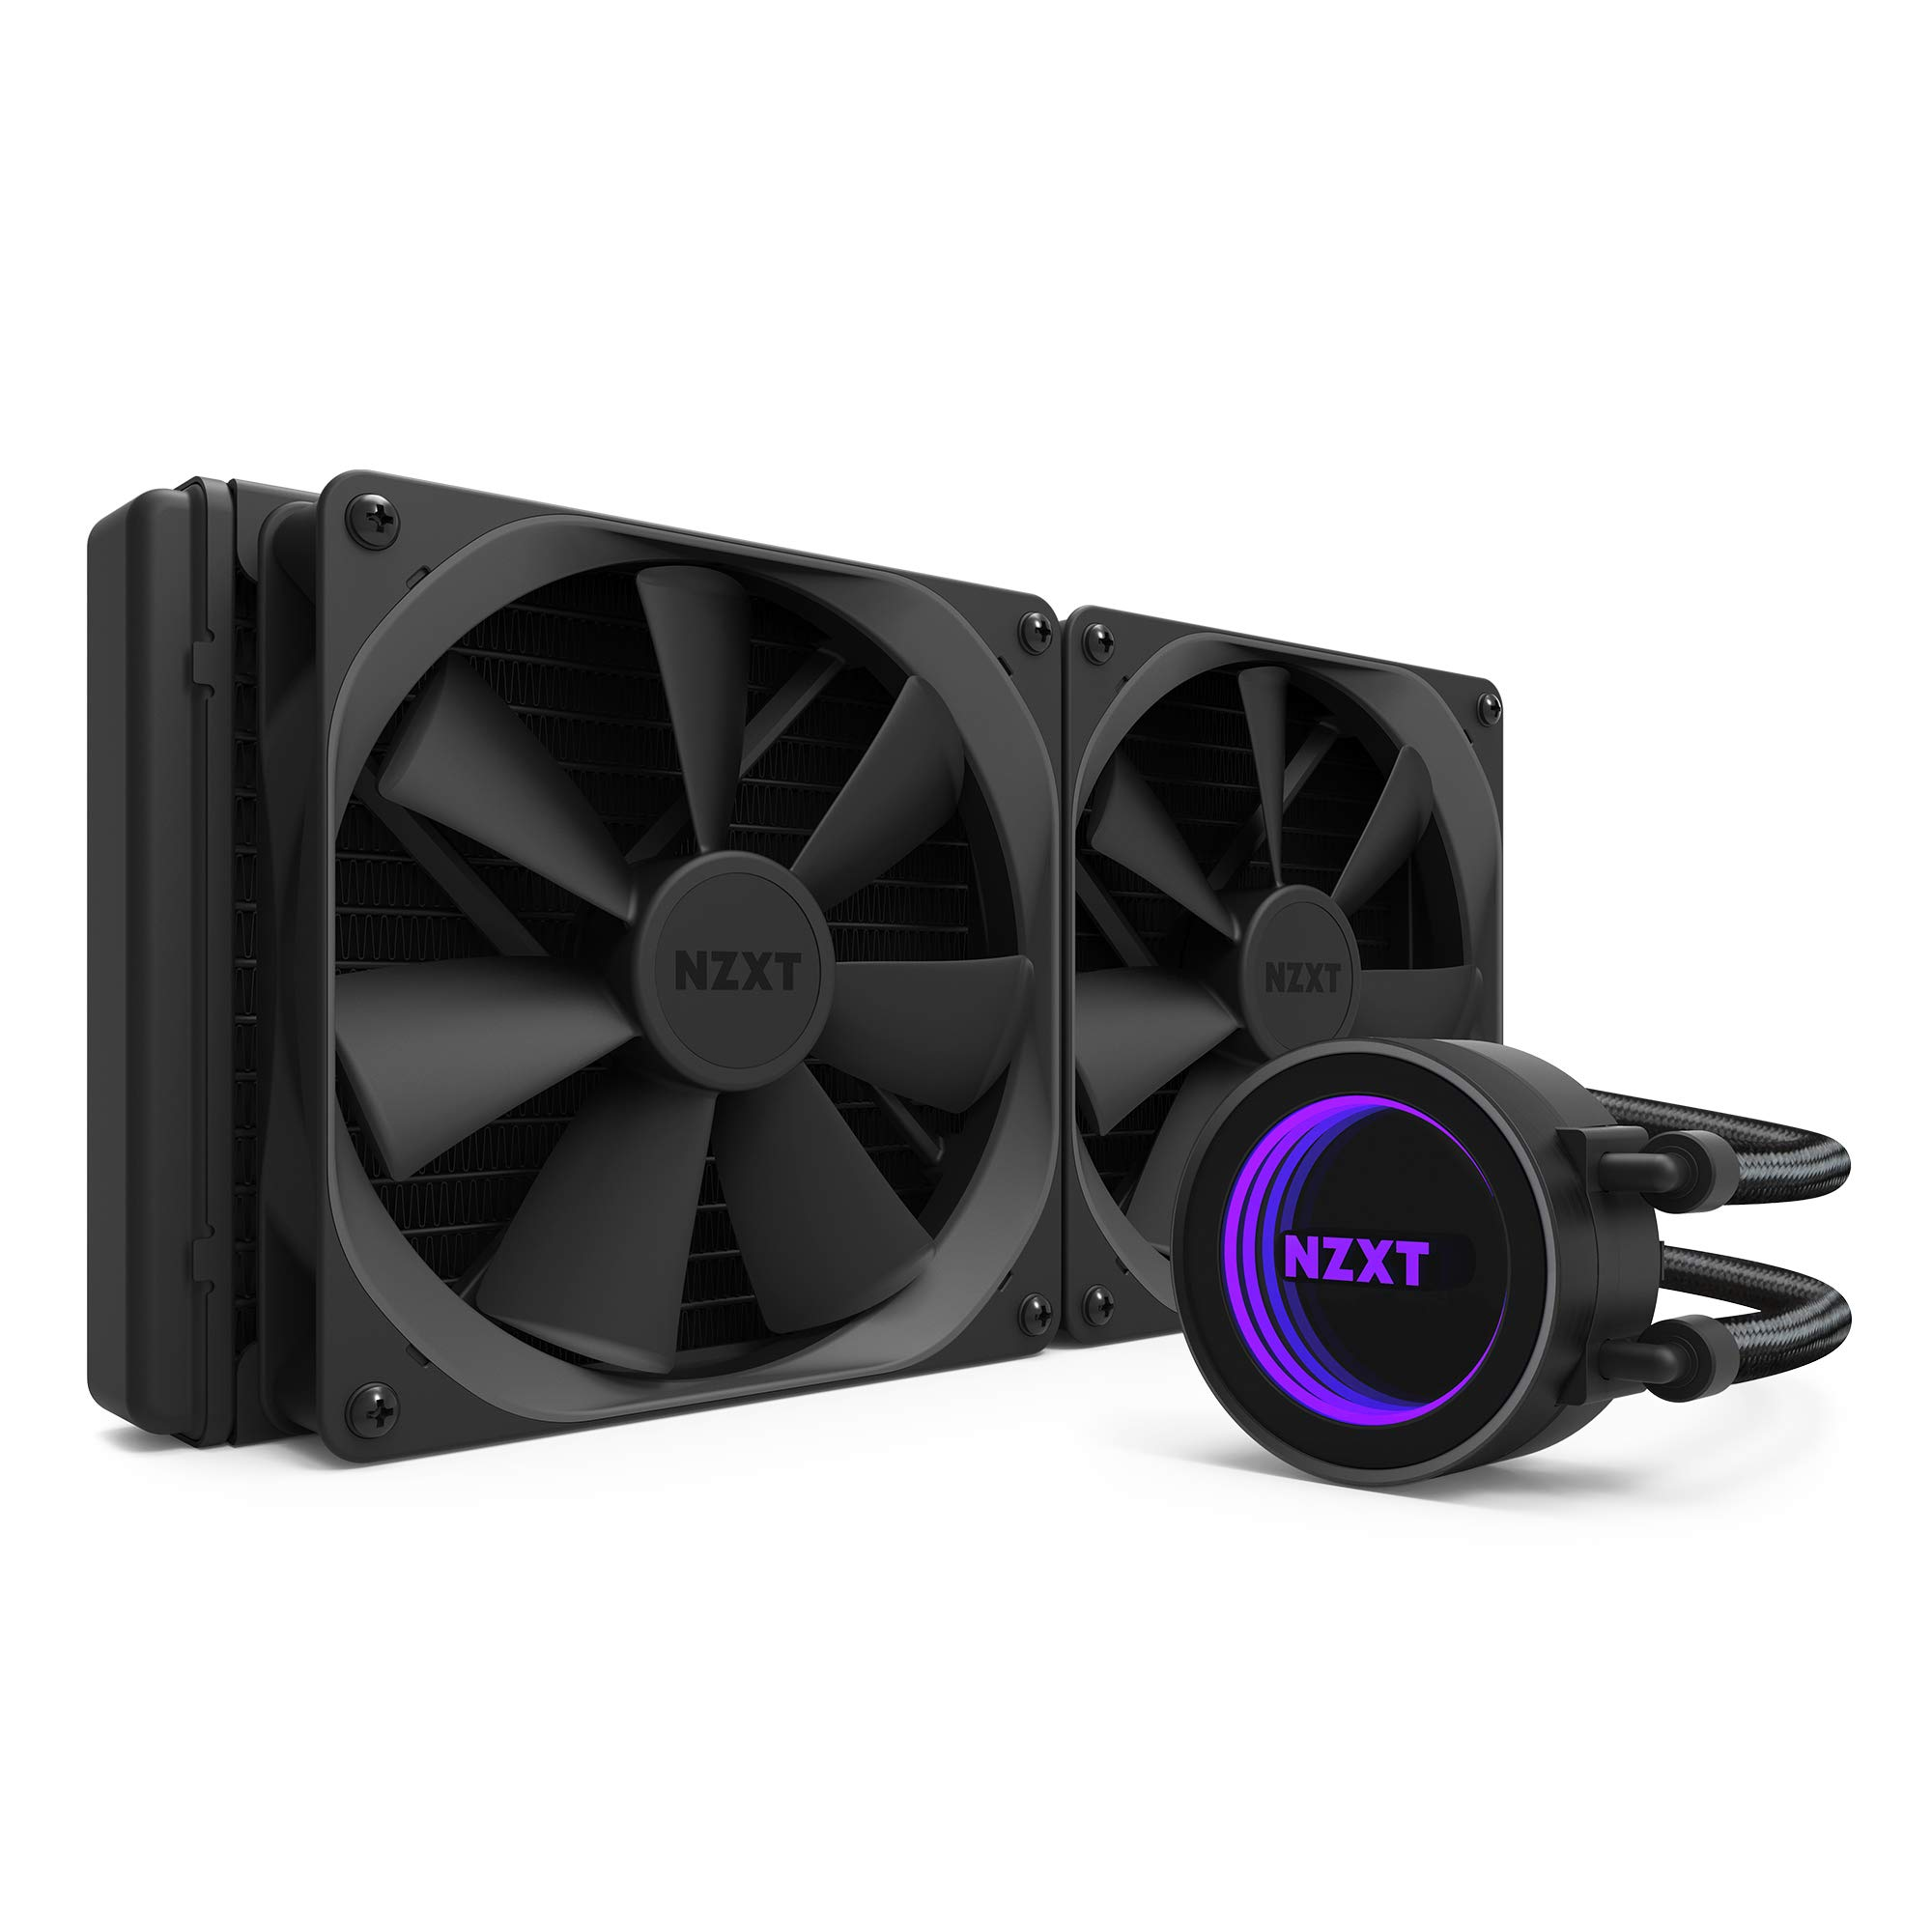 NZXT Kraken X62 (280mm) All-in-One Water Cooling Unit with AM4 Bracket